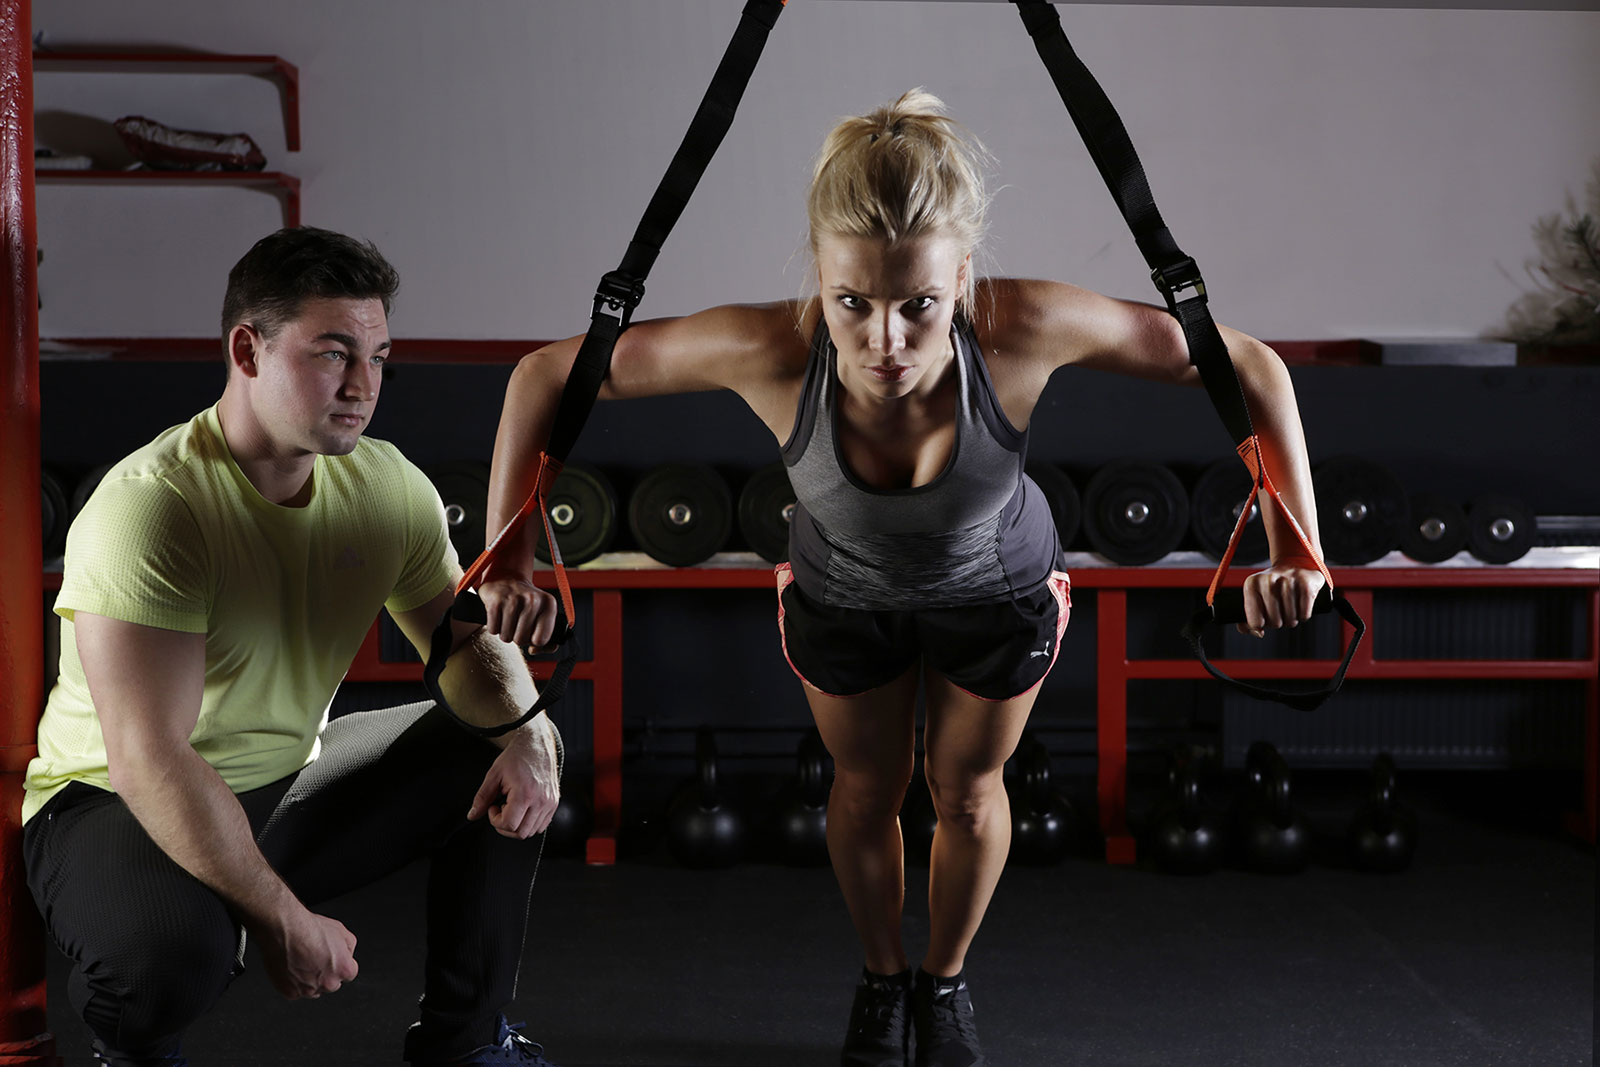 5 Things to Consider When Hiring a Personal Trainer